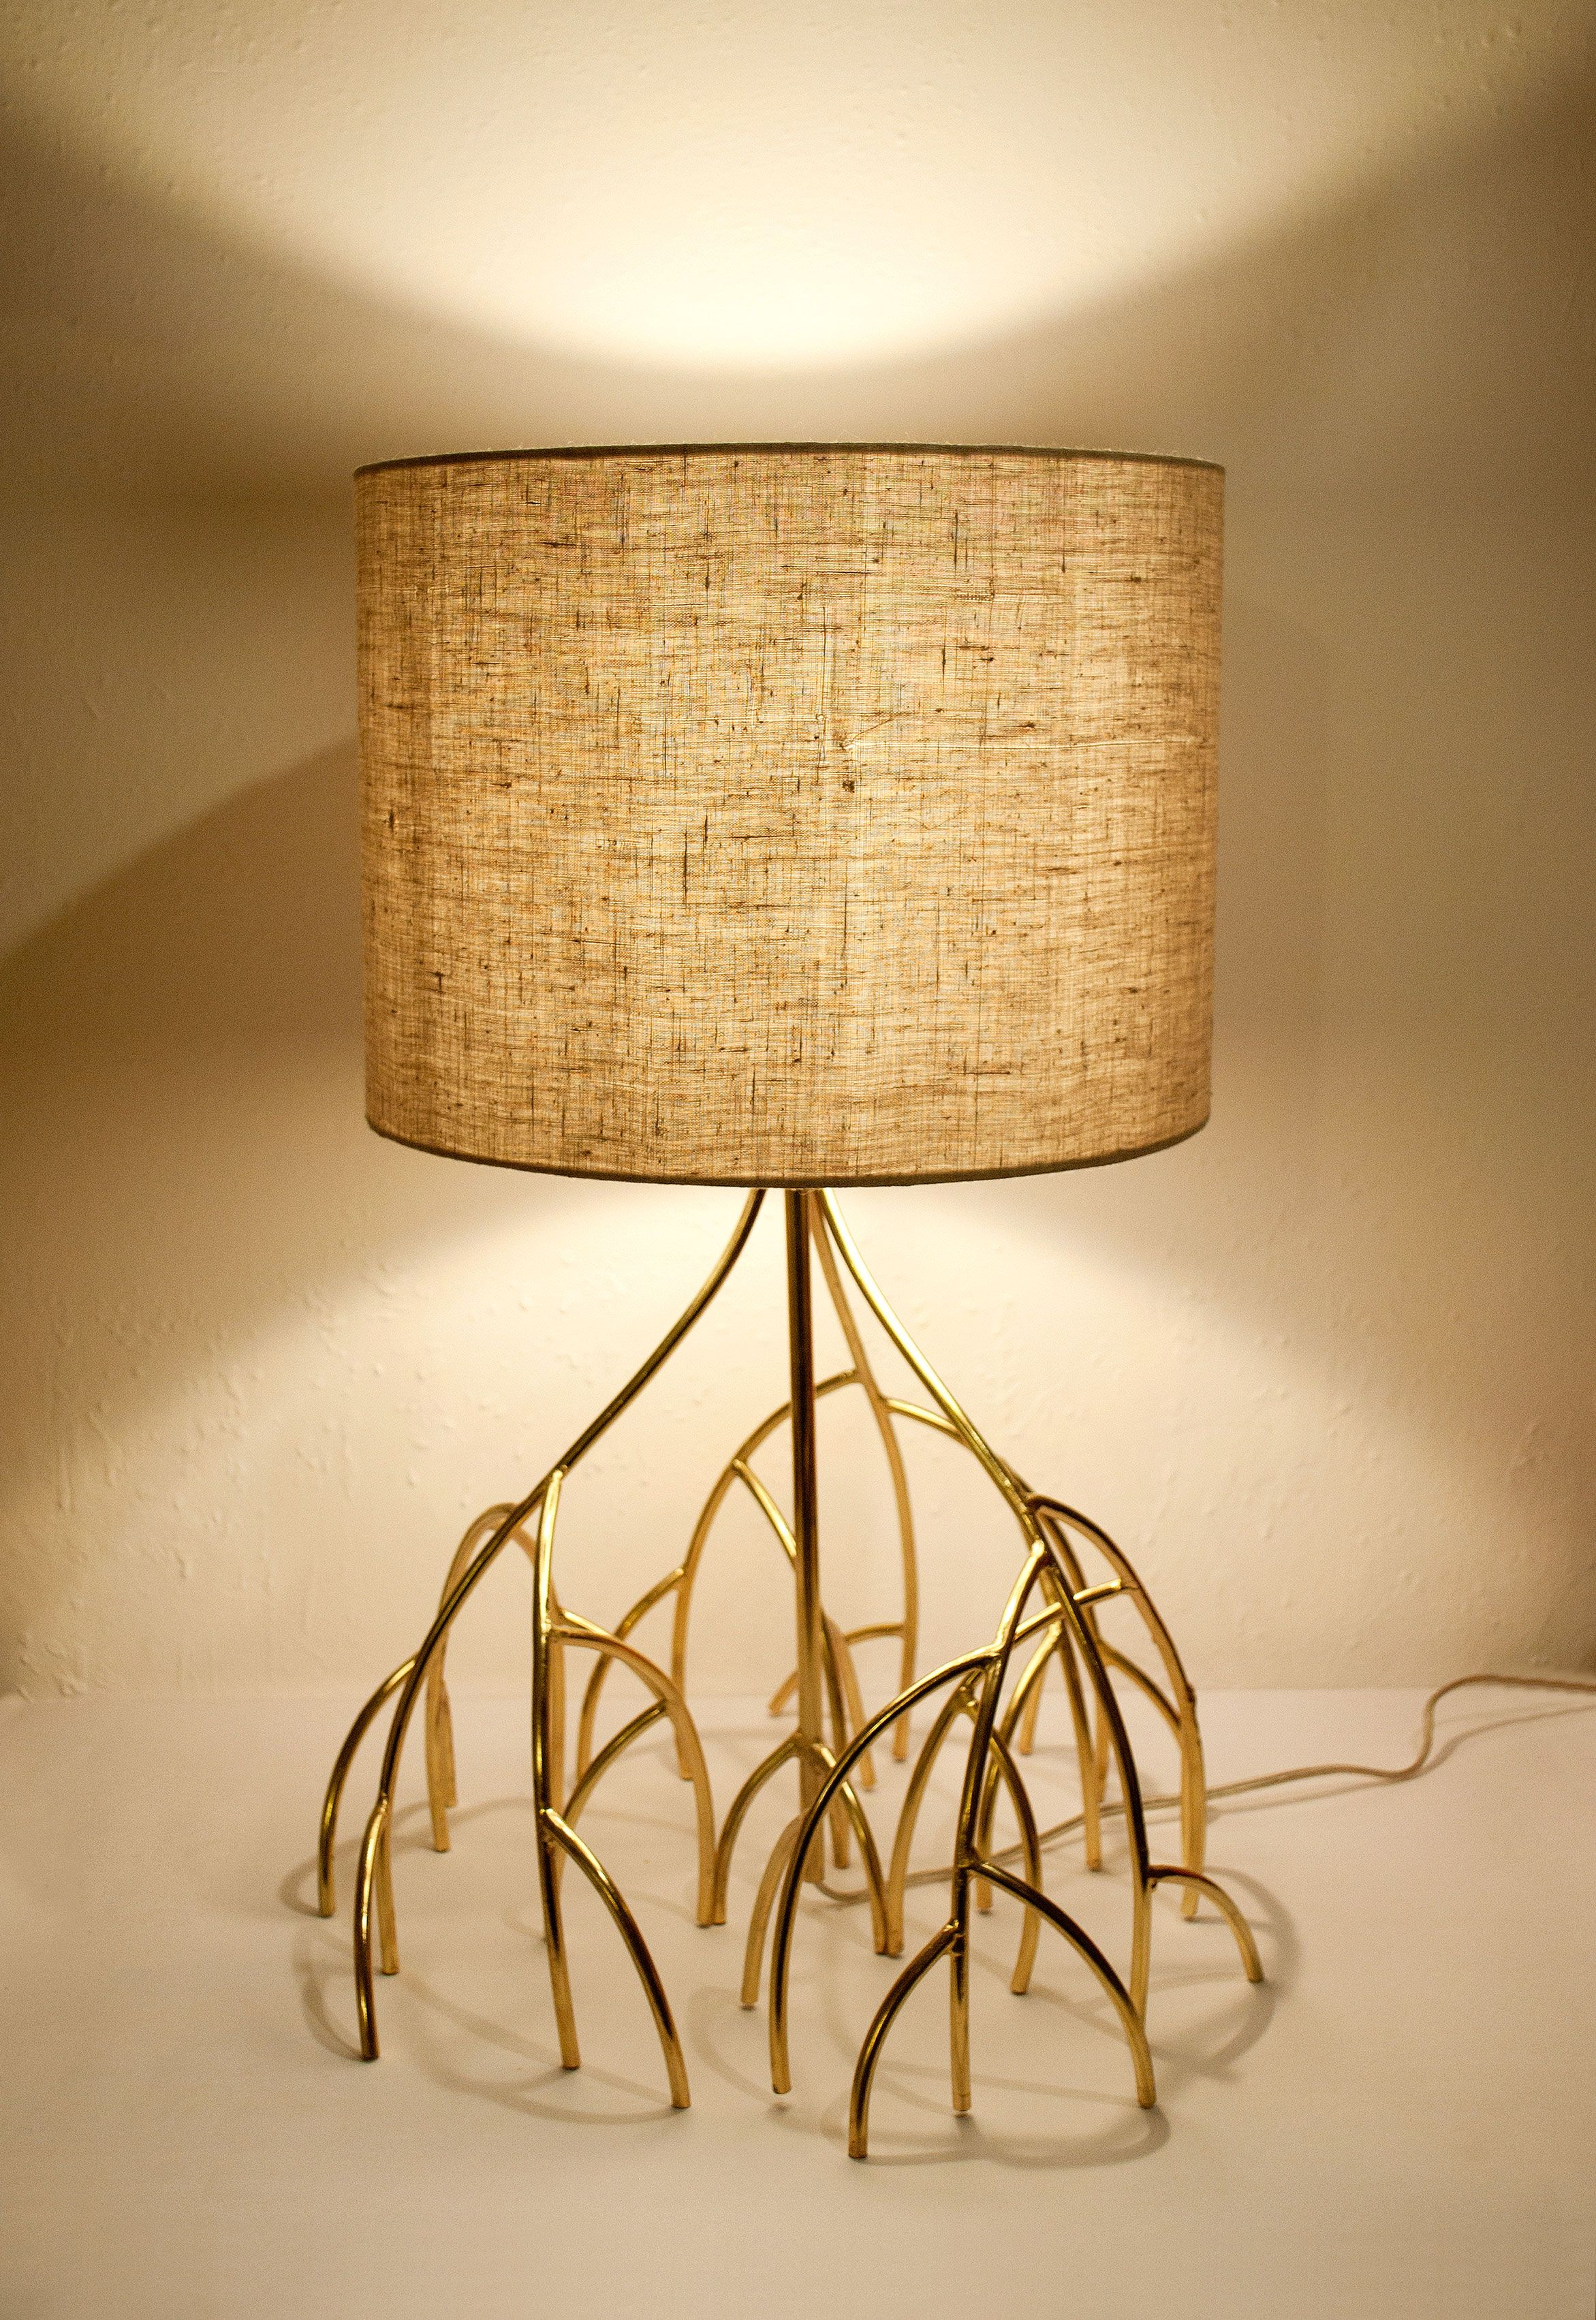 Lights & Mangrove Table Lamp Mangrove Lamp Last yearu0027s interior project for ... azcodes.com